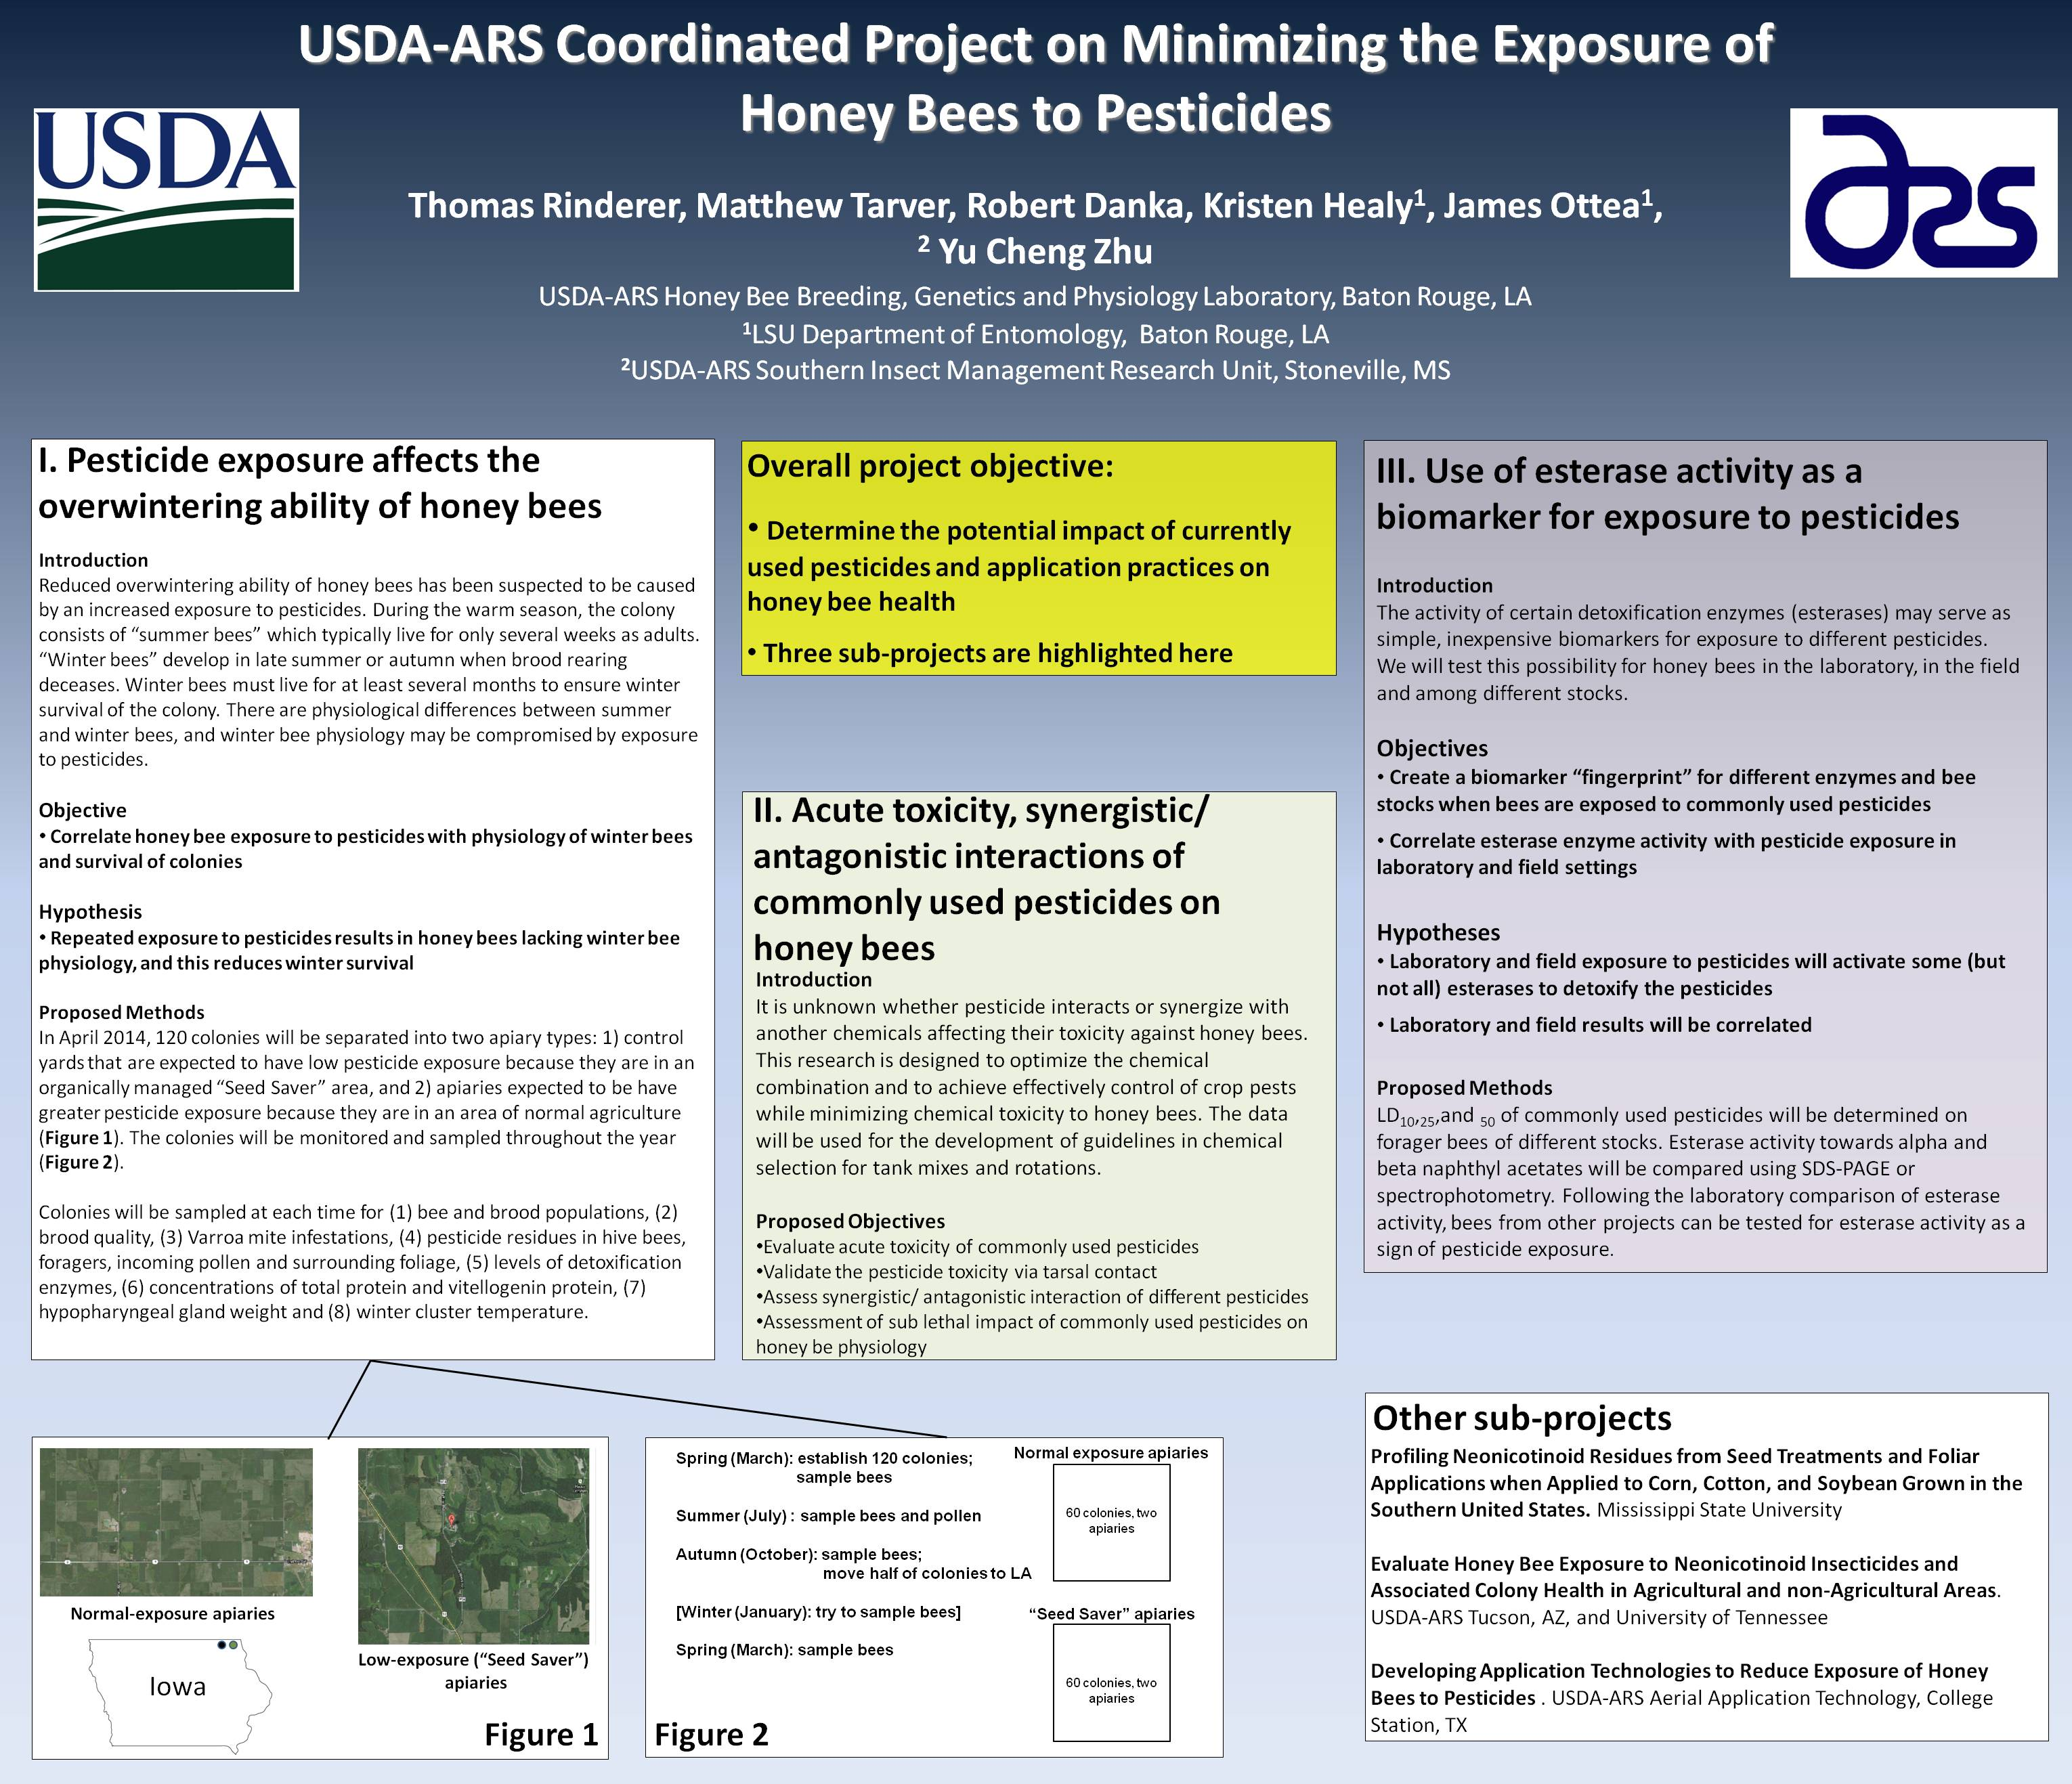 USDA-ARS Coordinated Project on Minimizing the Exposure of Honey Bees to Pesticides